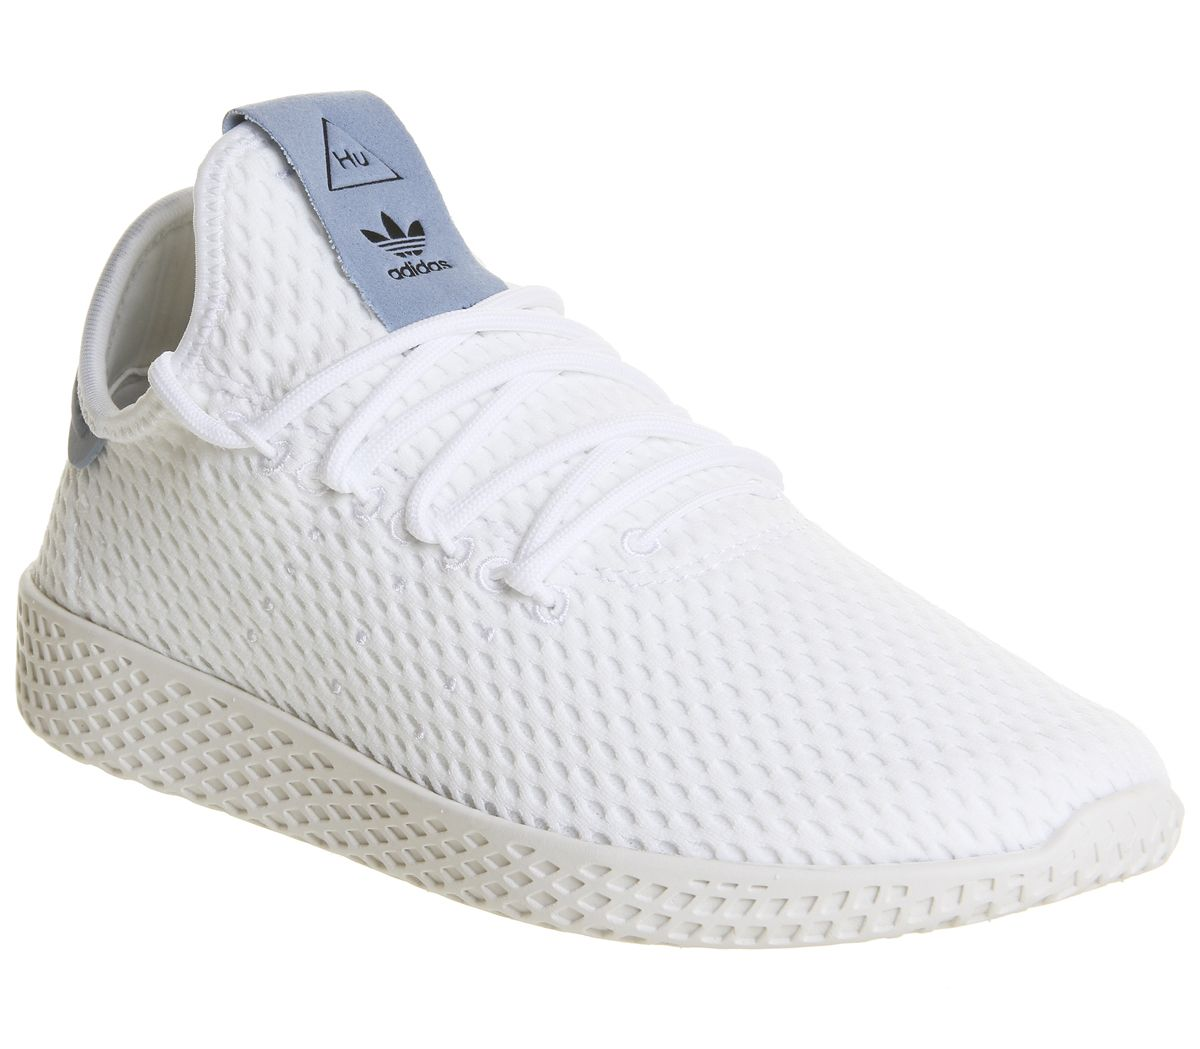 30634d90a adidas Pw Tennis Hu White Tactile Blue - Hers trainers